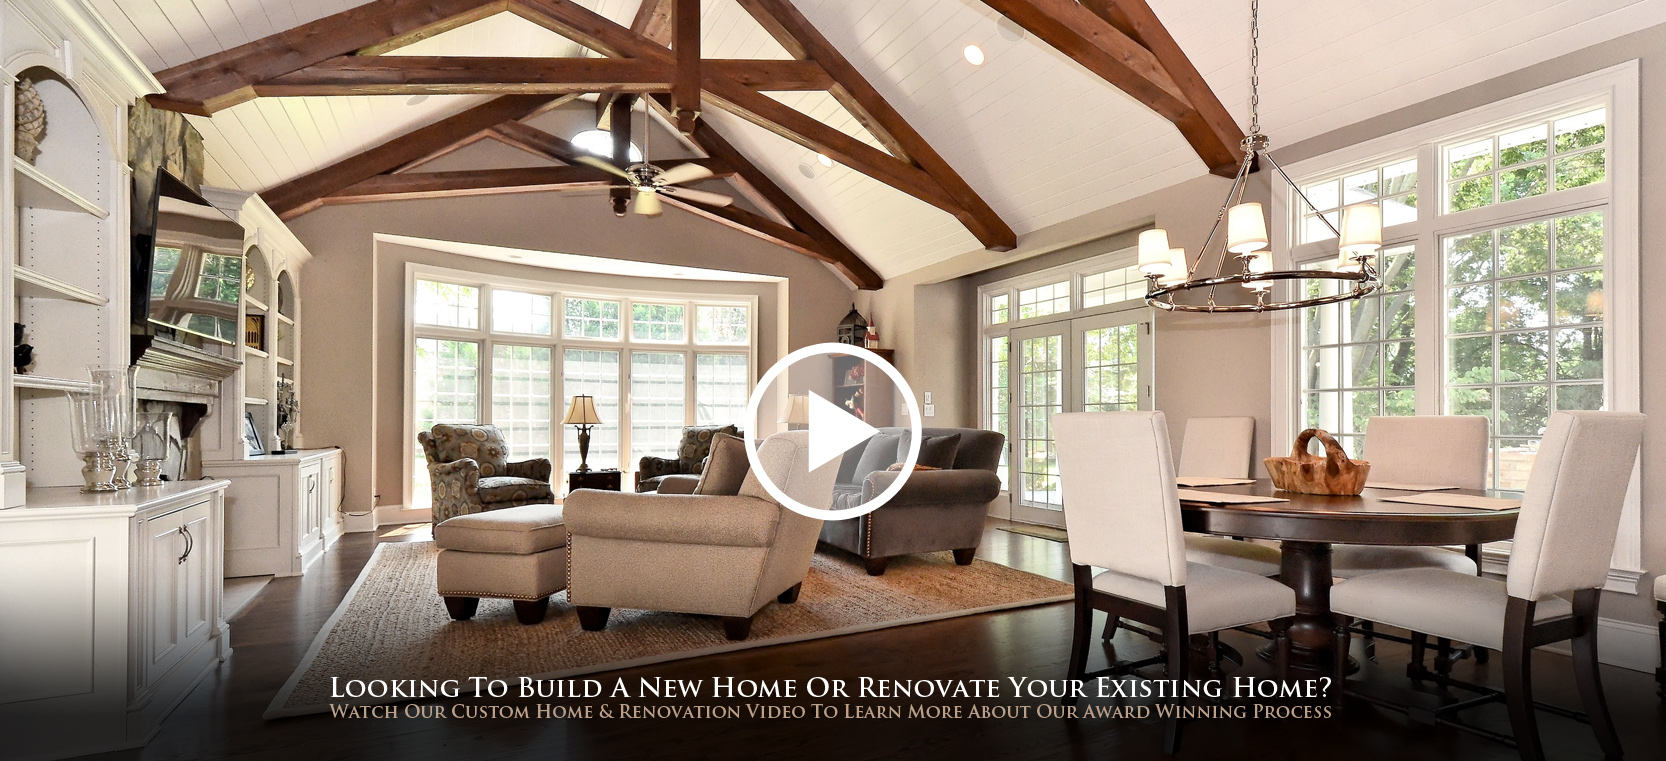 alair-custom-home-builders-home-renovation-canada-video